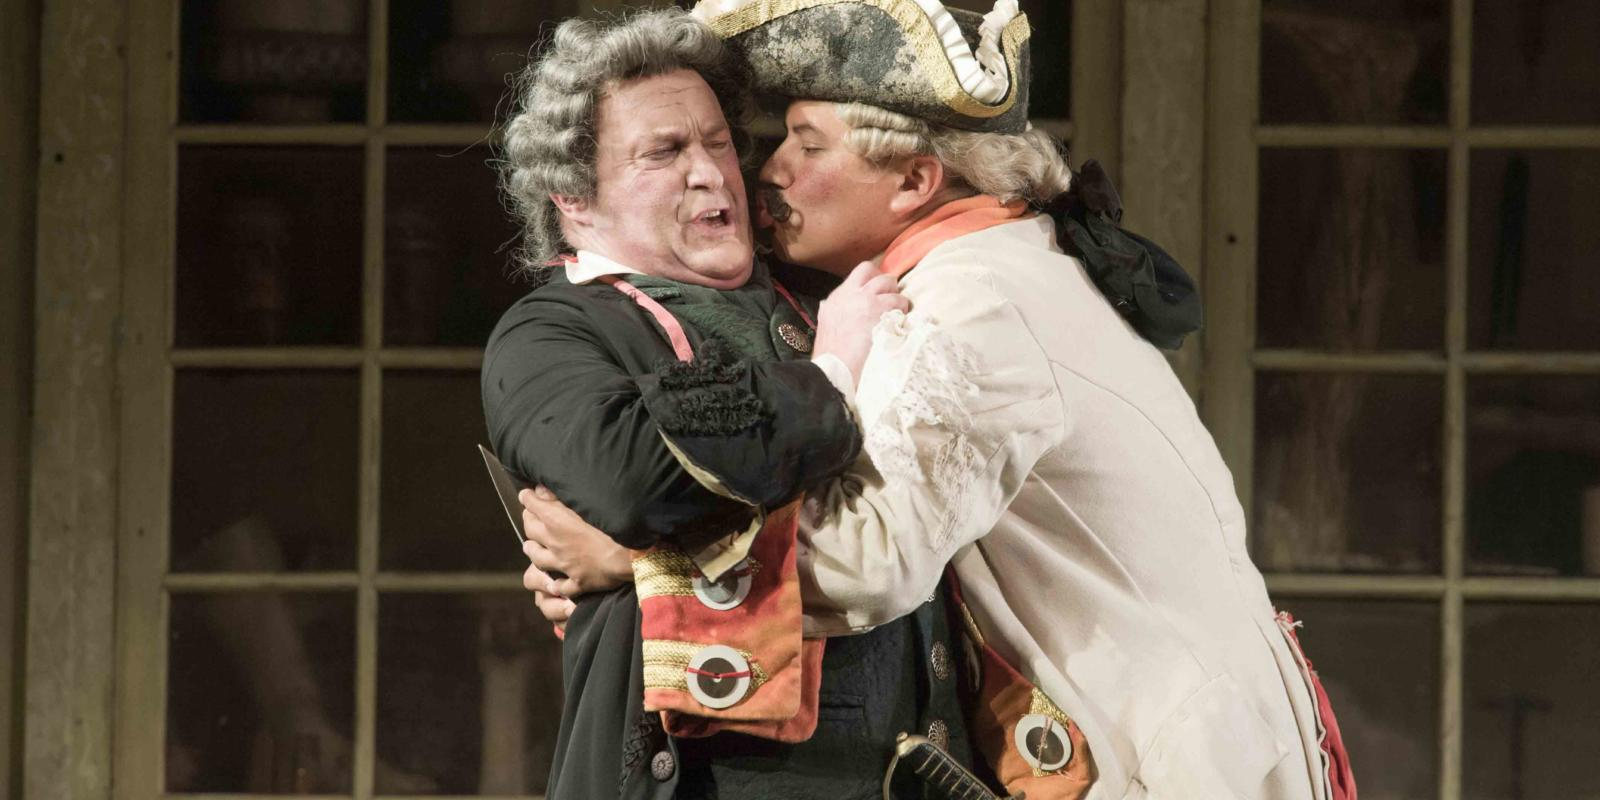 An image of Andrew Shore and Eleazar Rodriguez in Jonathan Miller's 2015 16 production of Barber of Seville